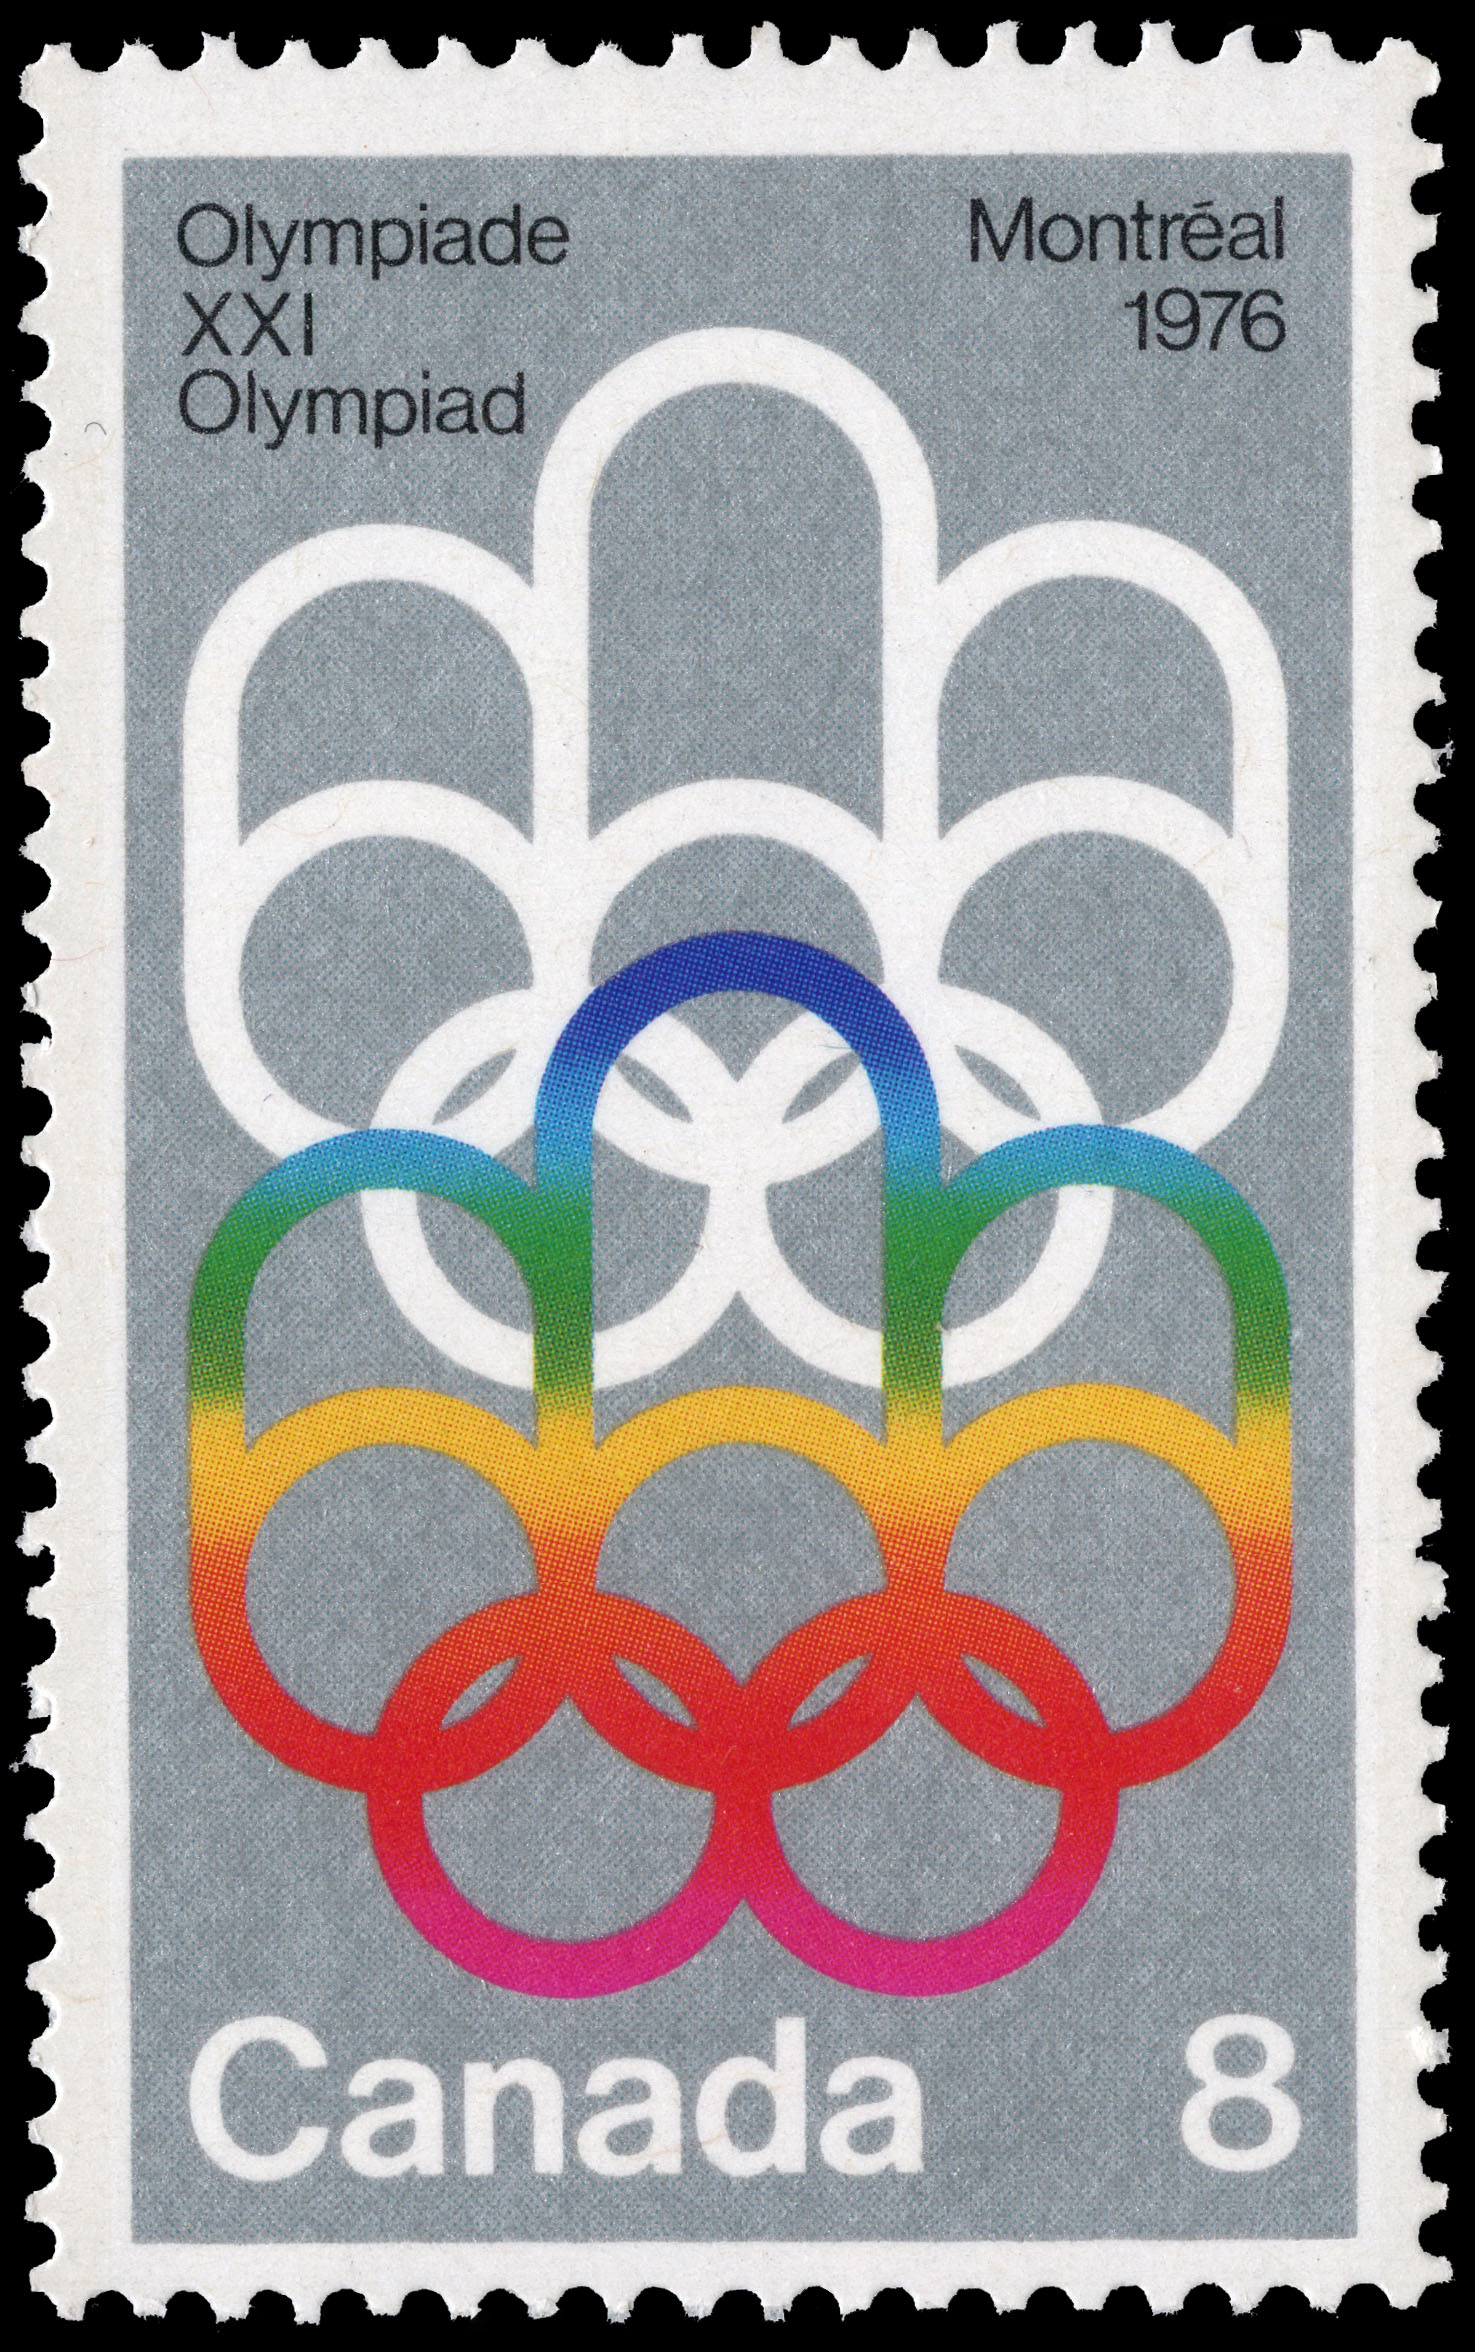 Symbol Of The Montreal Games Canada Postage Stamp 1976 Olympic Games